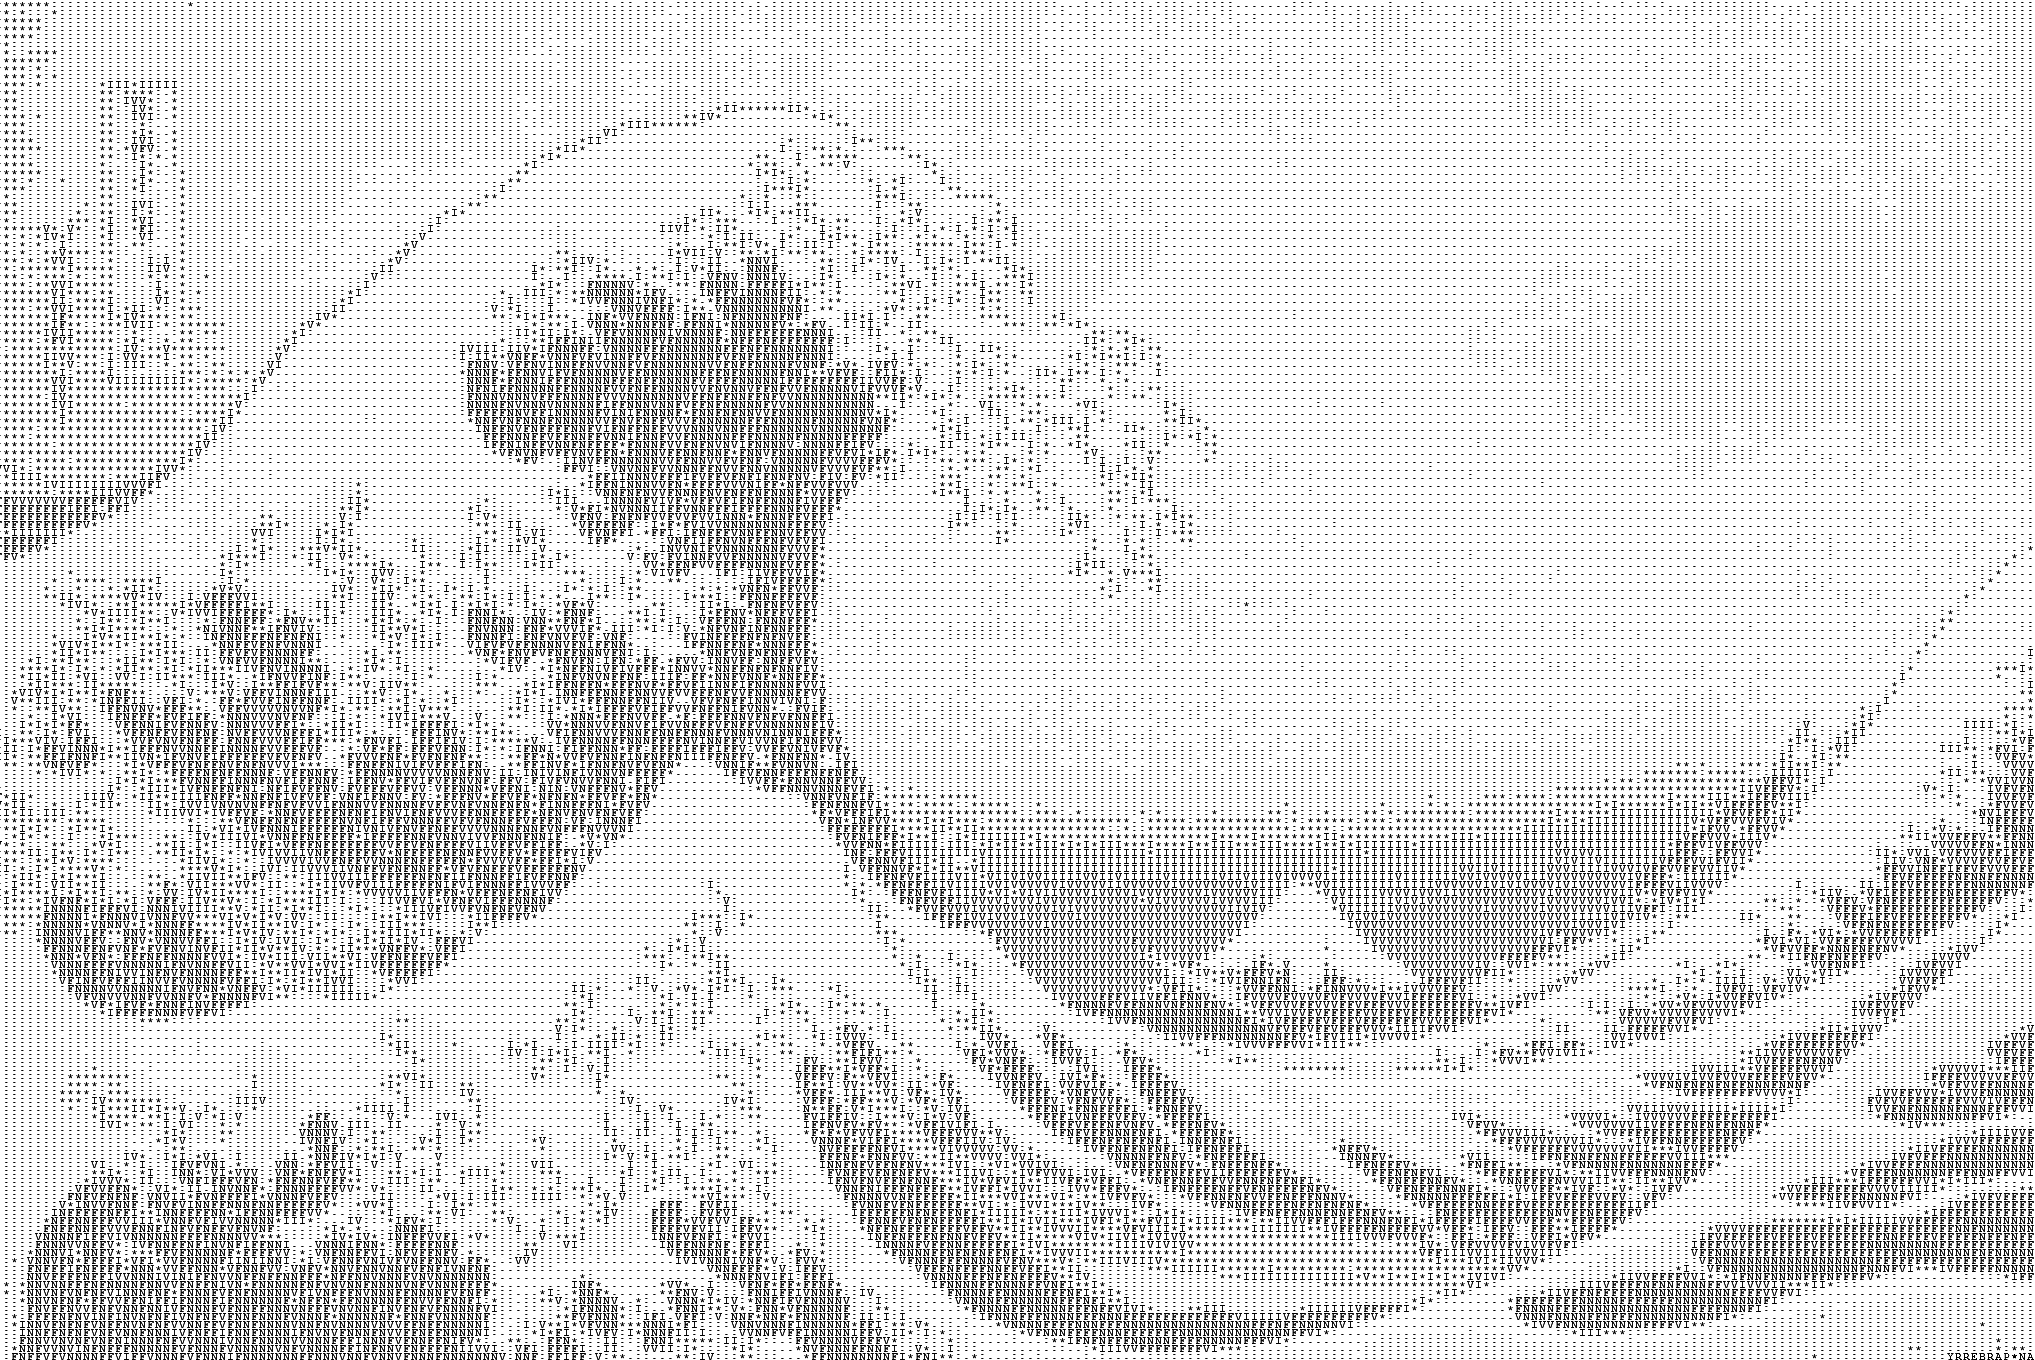 05f in the well of the great wave of kanagawa ascii art know your meme